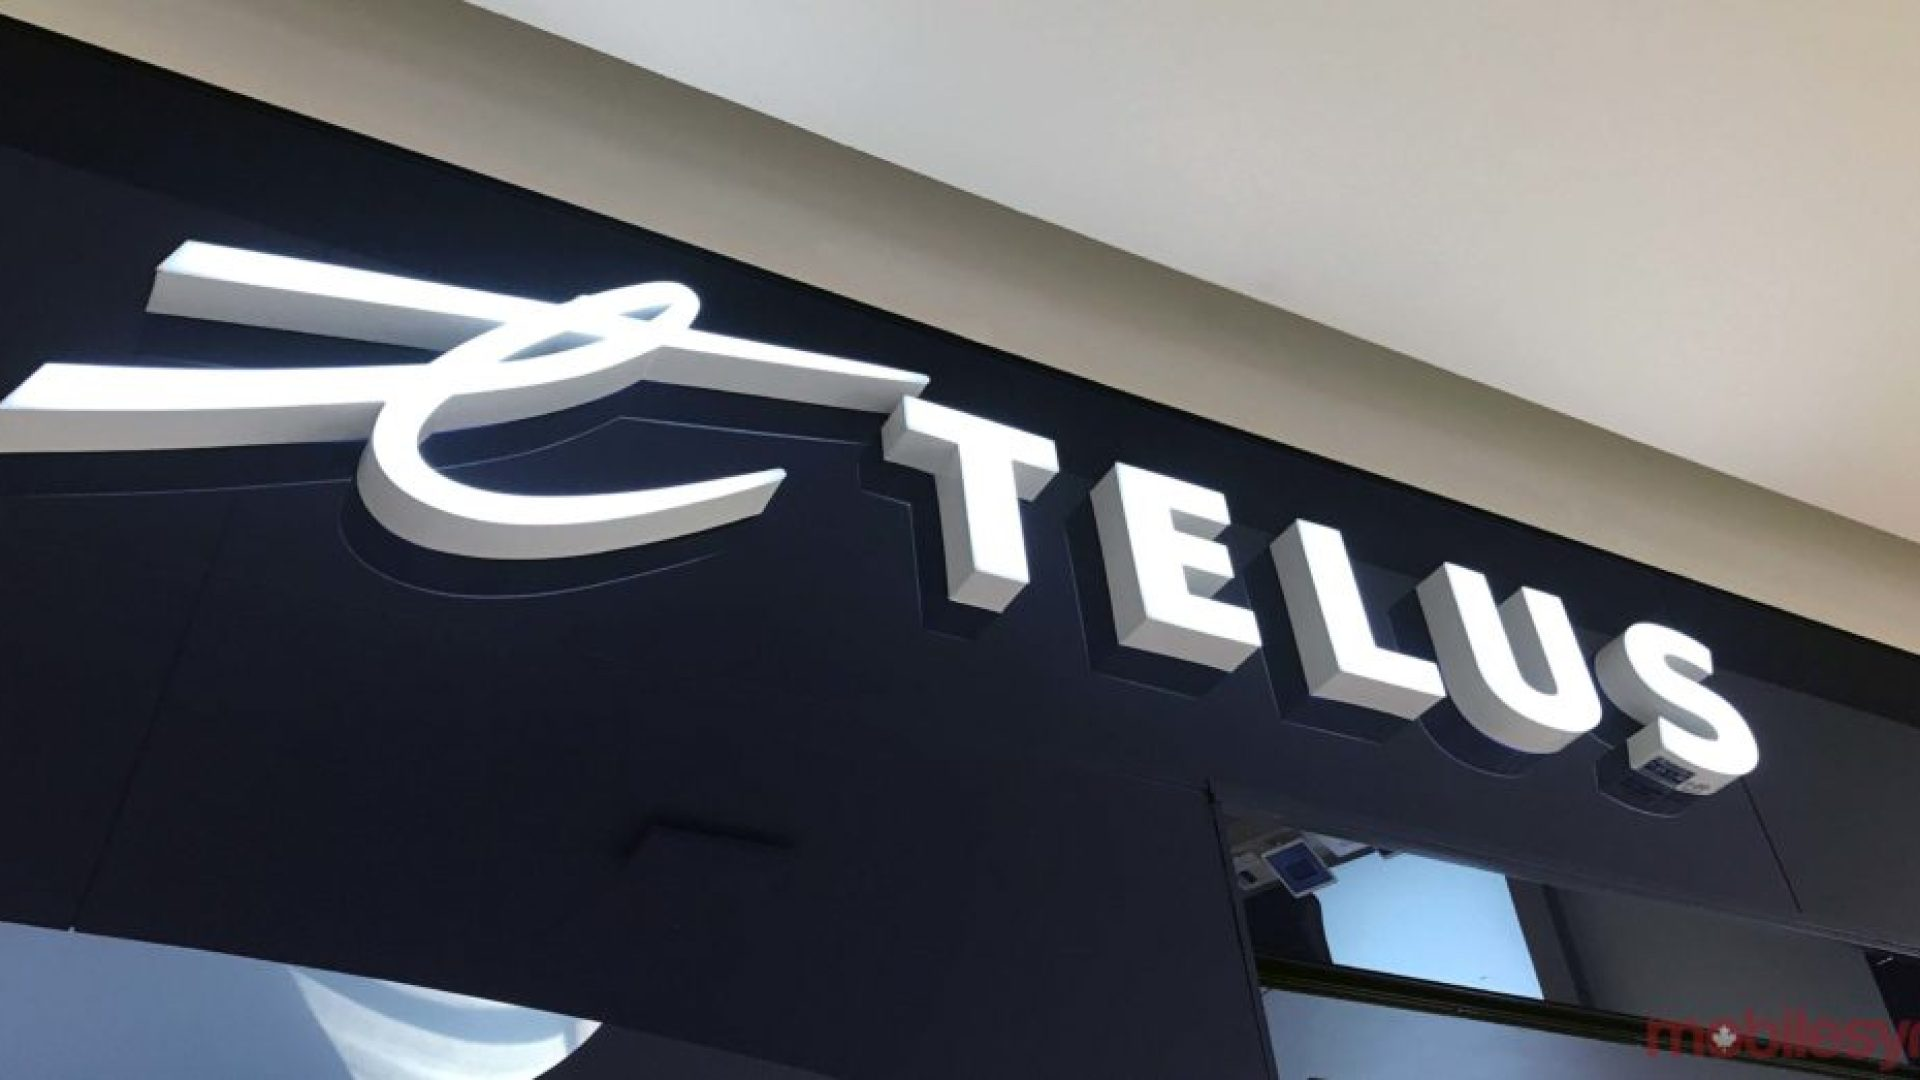 Telus brings back $75/750mbps internet plans with $300 activation credit